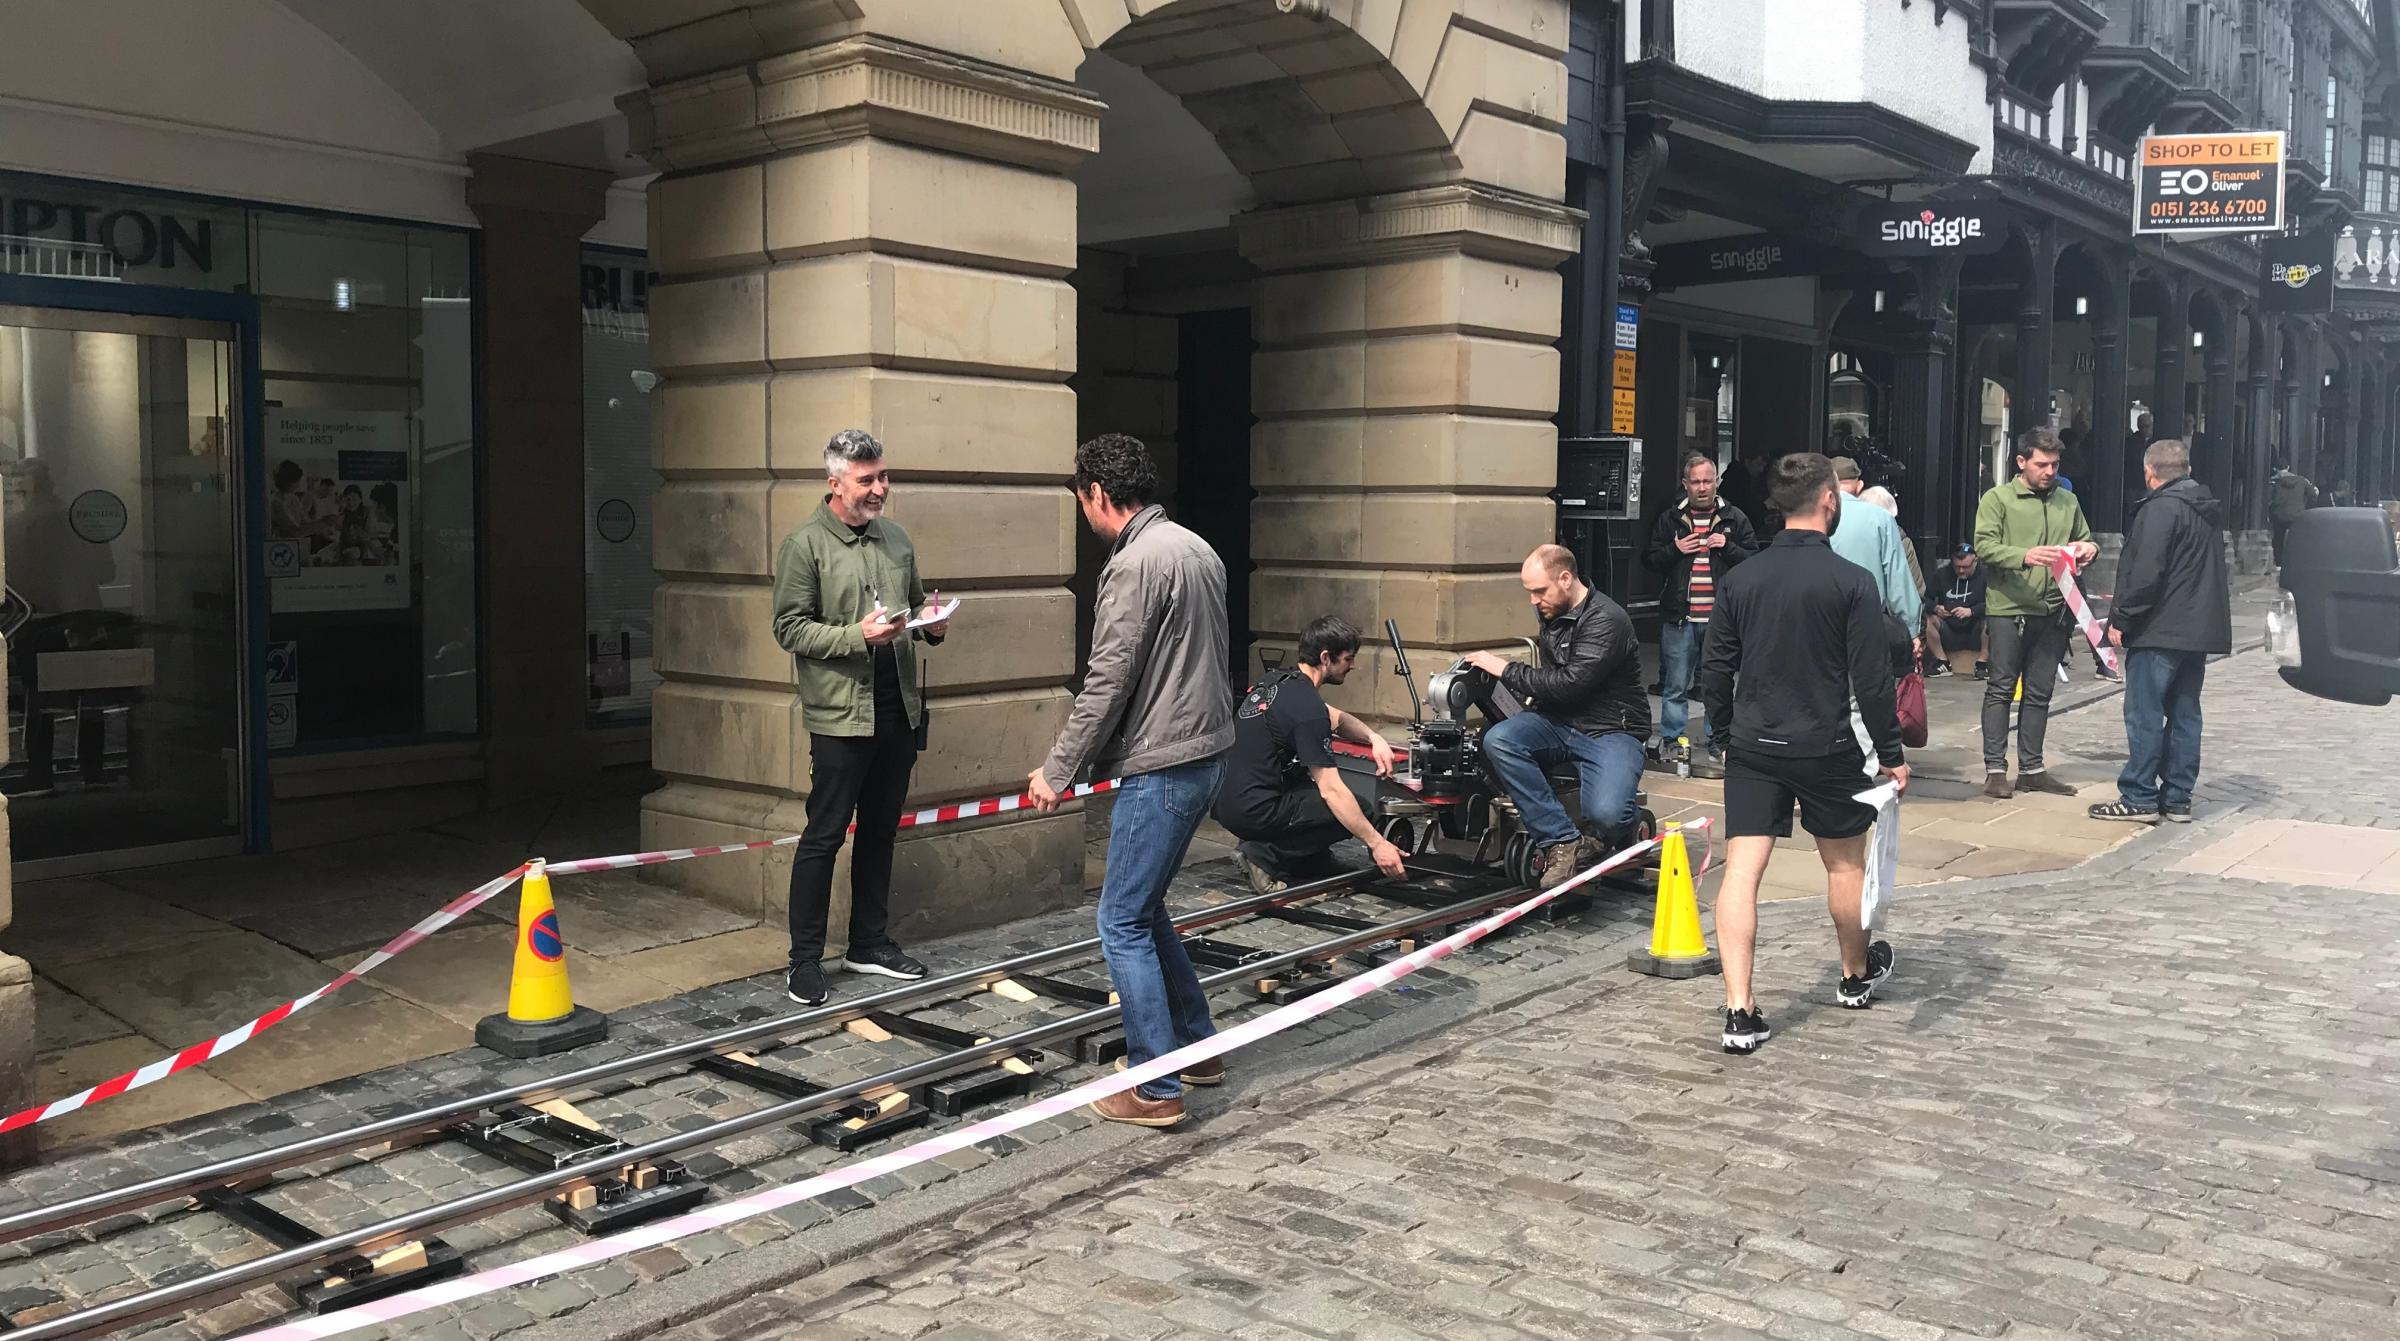 A film crew is making a commercial for Iceland on Northgate Street in Chester.